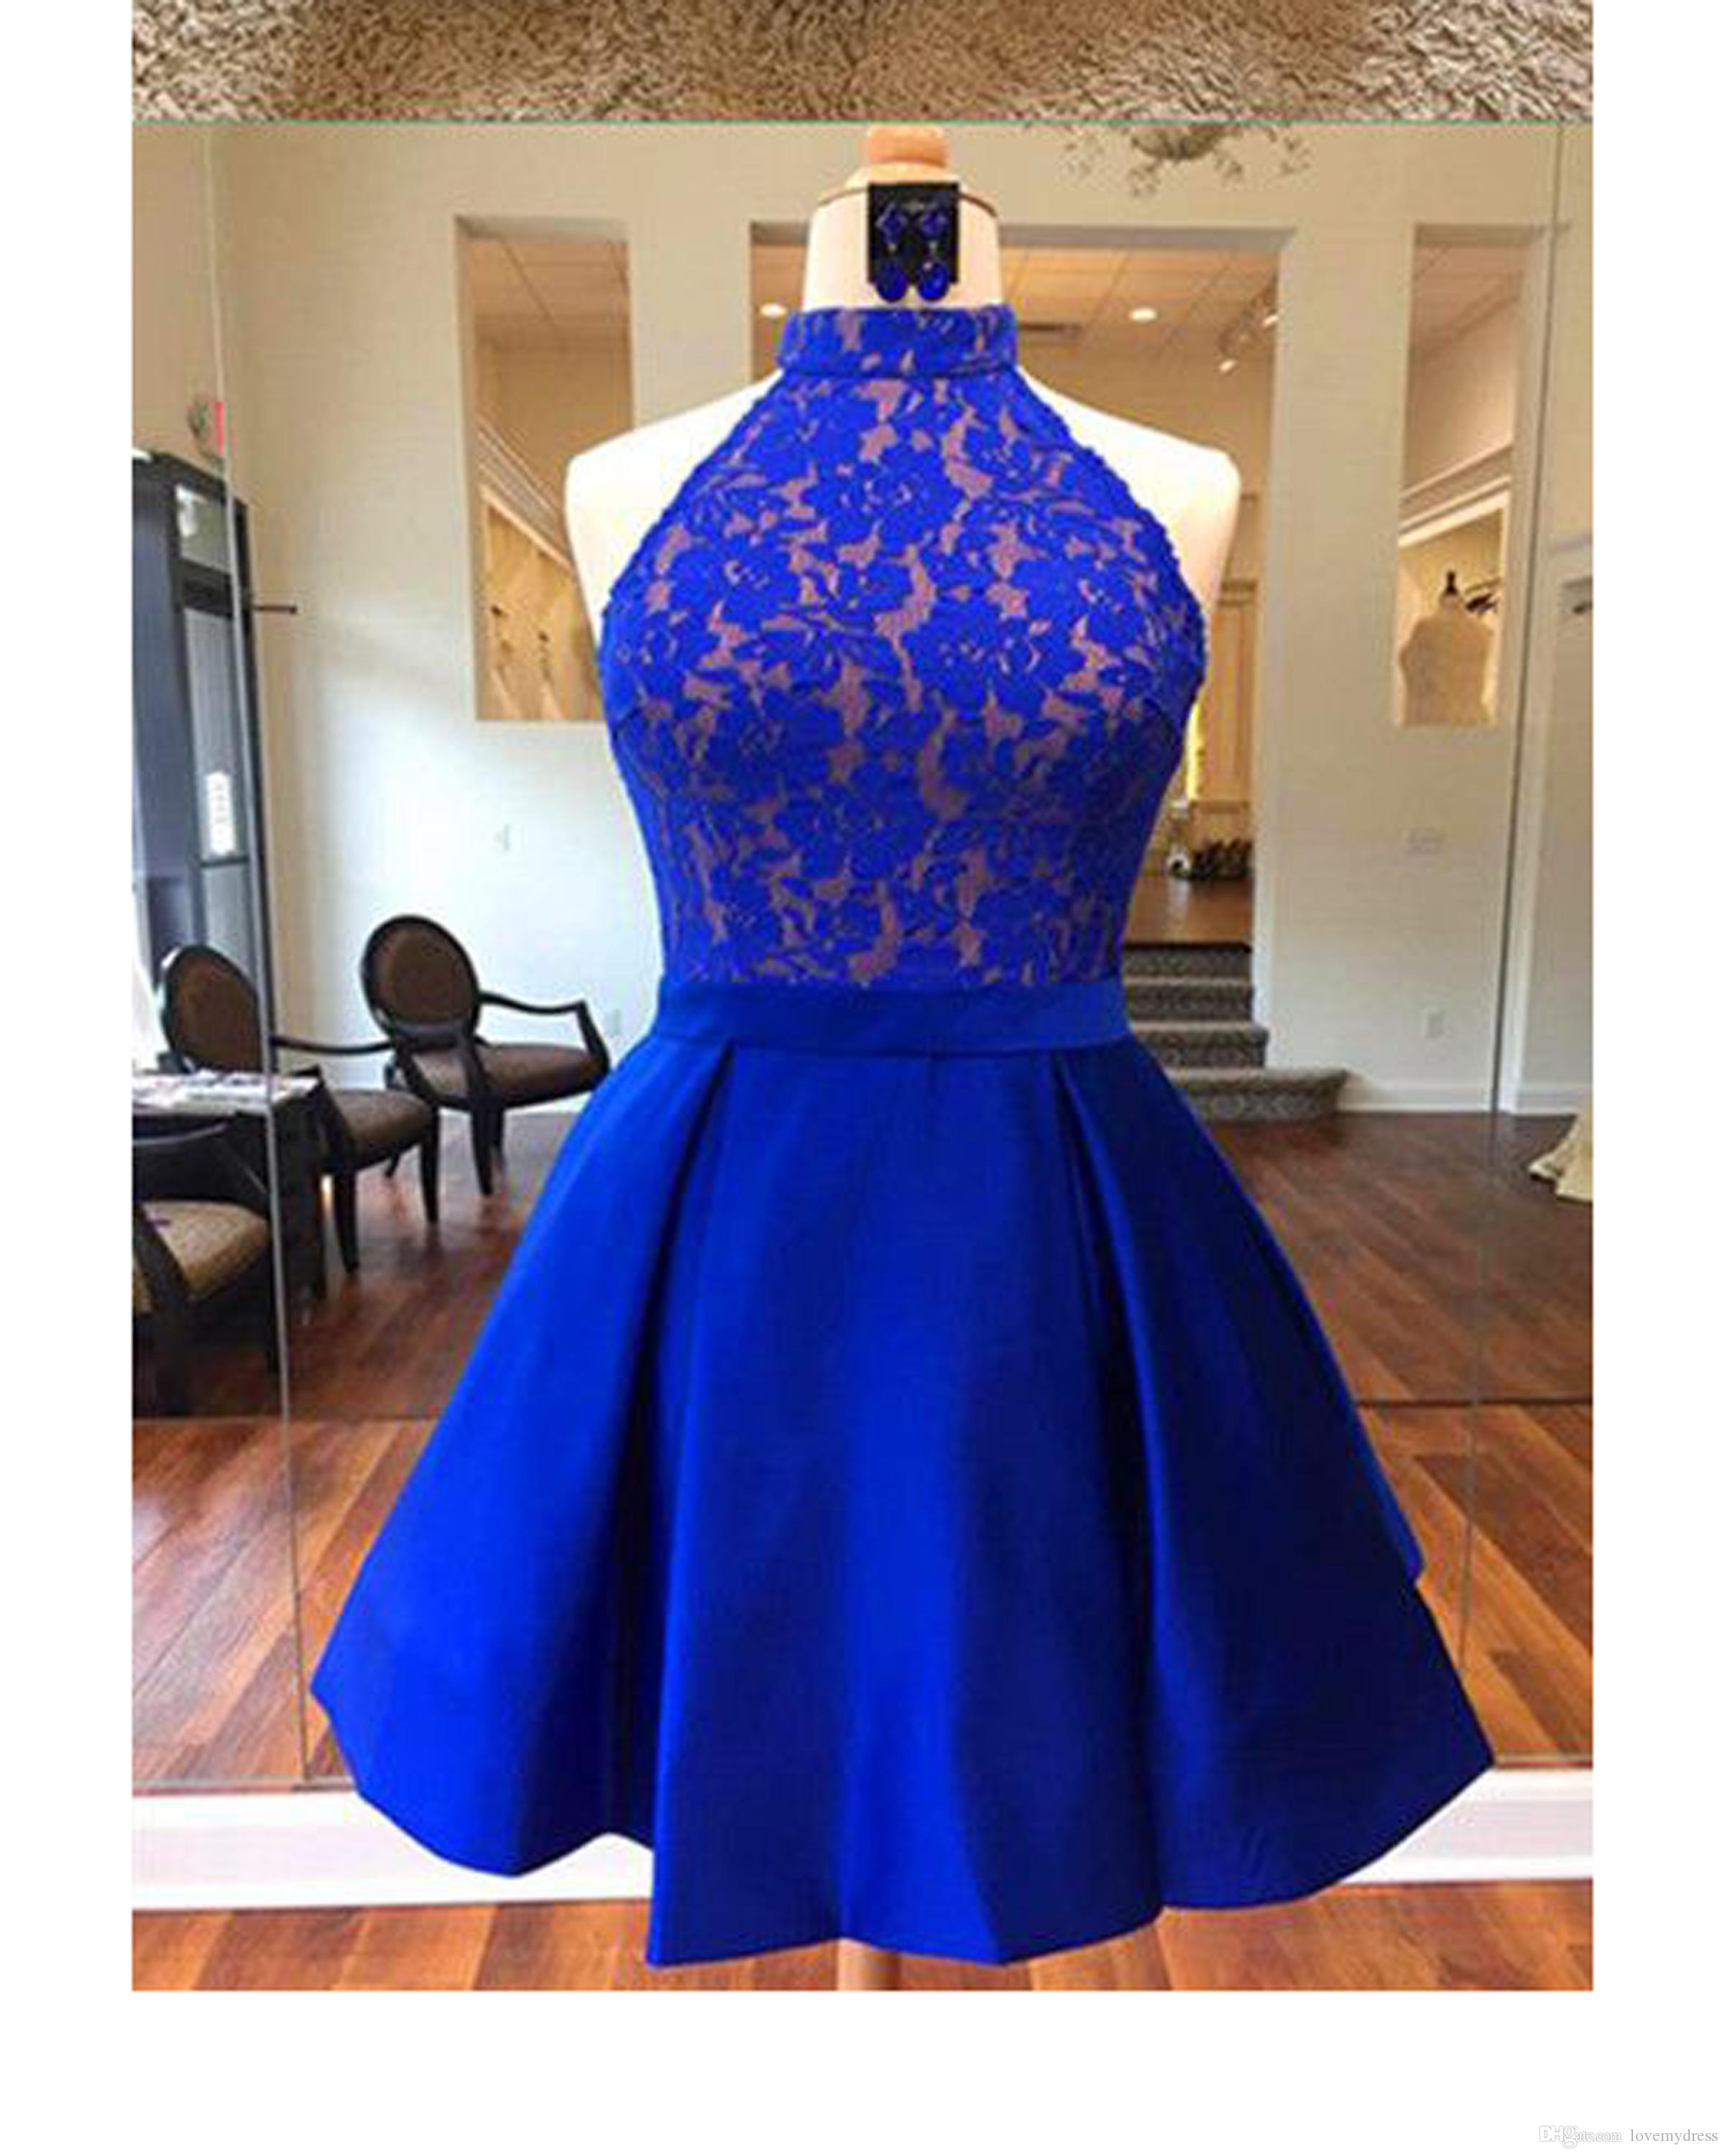 1a1e4fa7af633 High Neck Royal Blue Party Homecoming Dress Short Cheap A Line Satin Lace  Backless Short Prom Evening Graduation Dresses New For Girls Cute White  Party ...